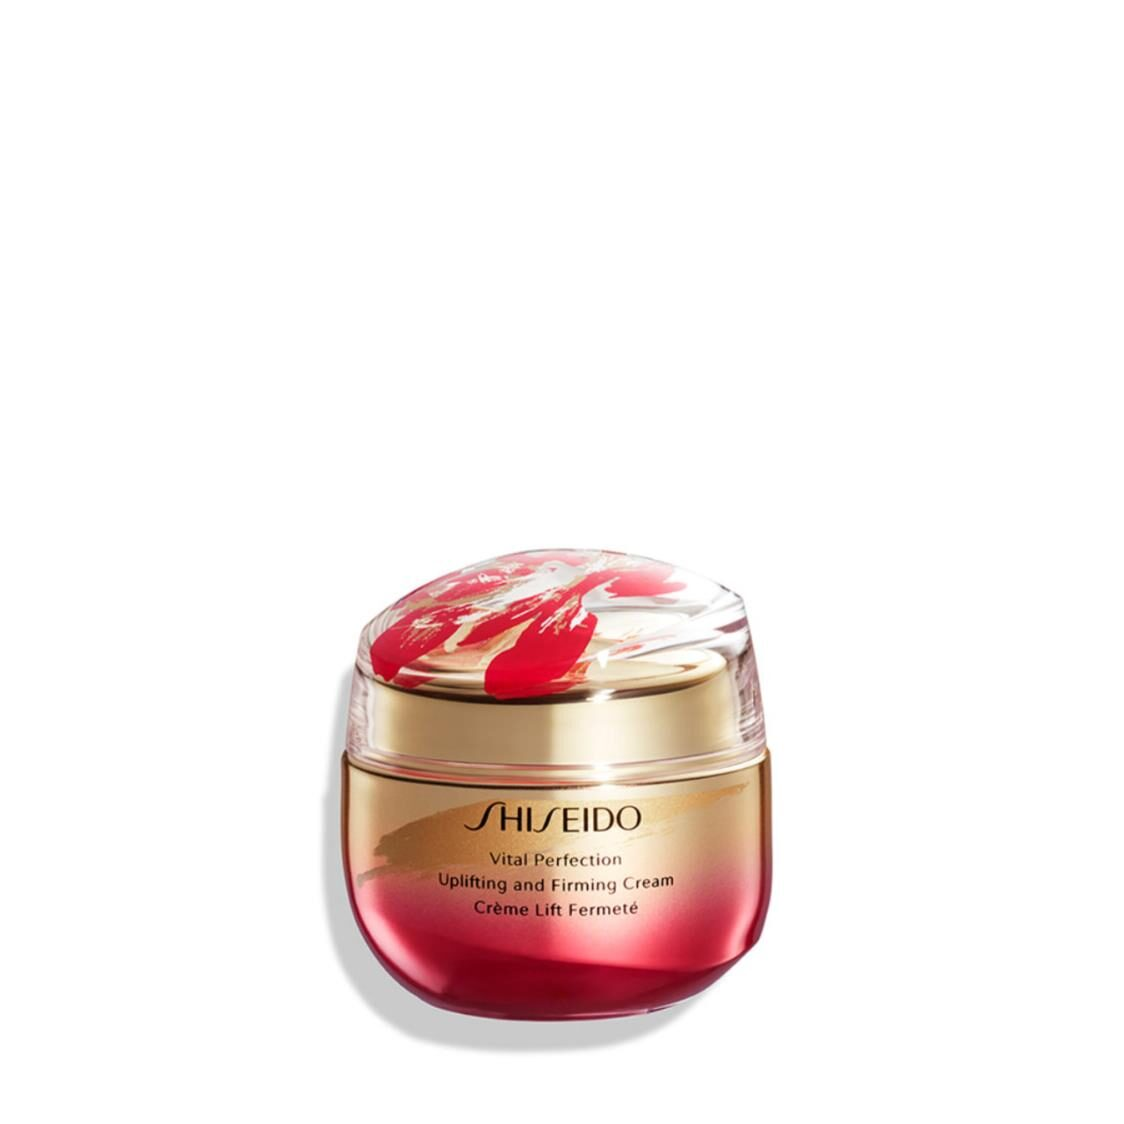 Shiseido Vital Perfection Uplifting and Firming Cream CNY Limited Edition